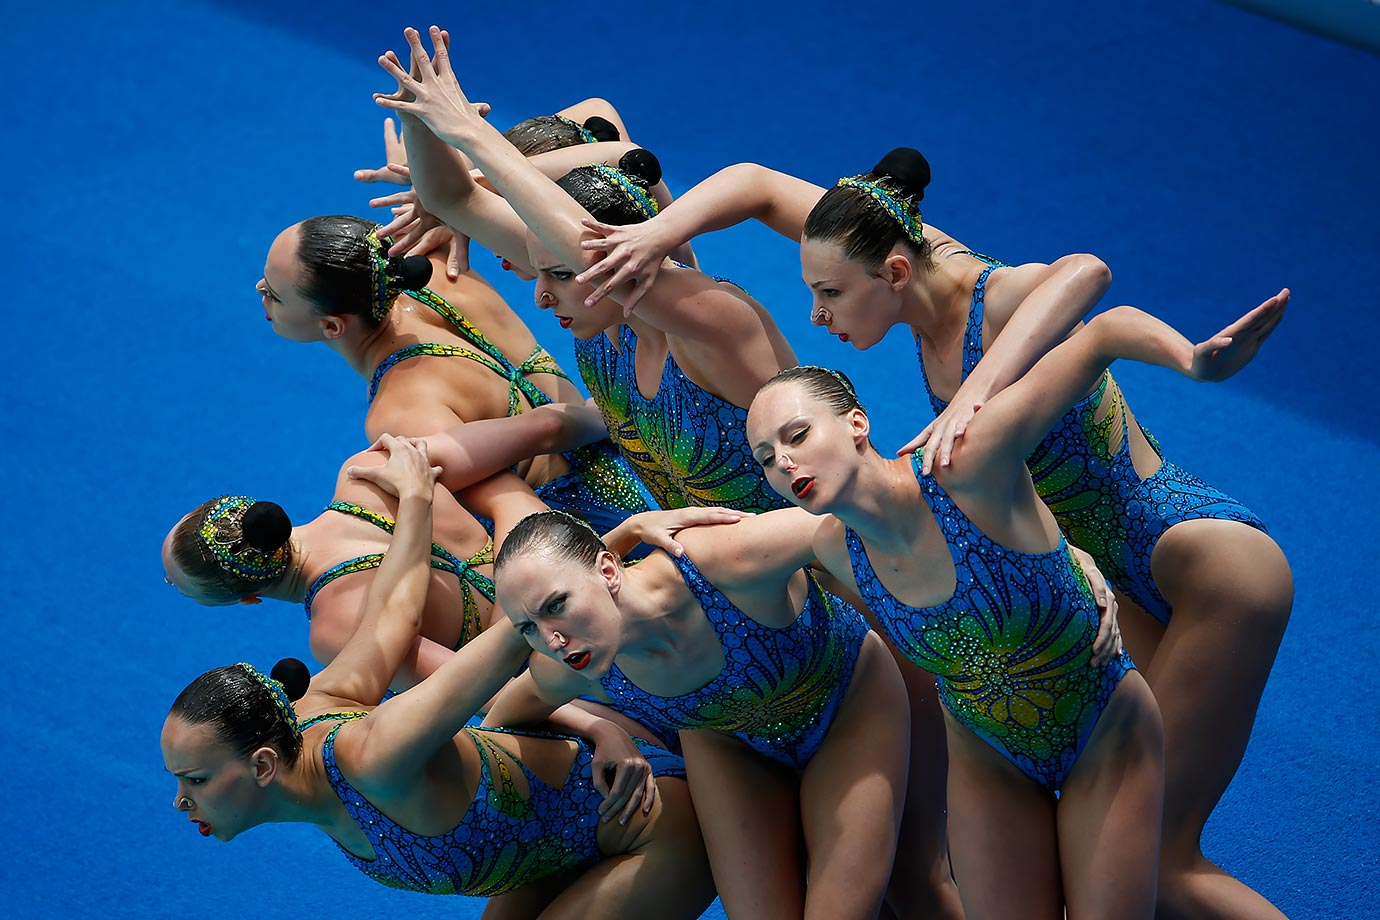 Canada's team performs their Technical Routine during the Synchronized Swimming Olympic Games Qualification Tournament in Rio de Janeiro, Brazil.